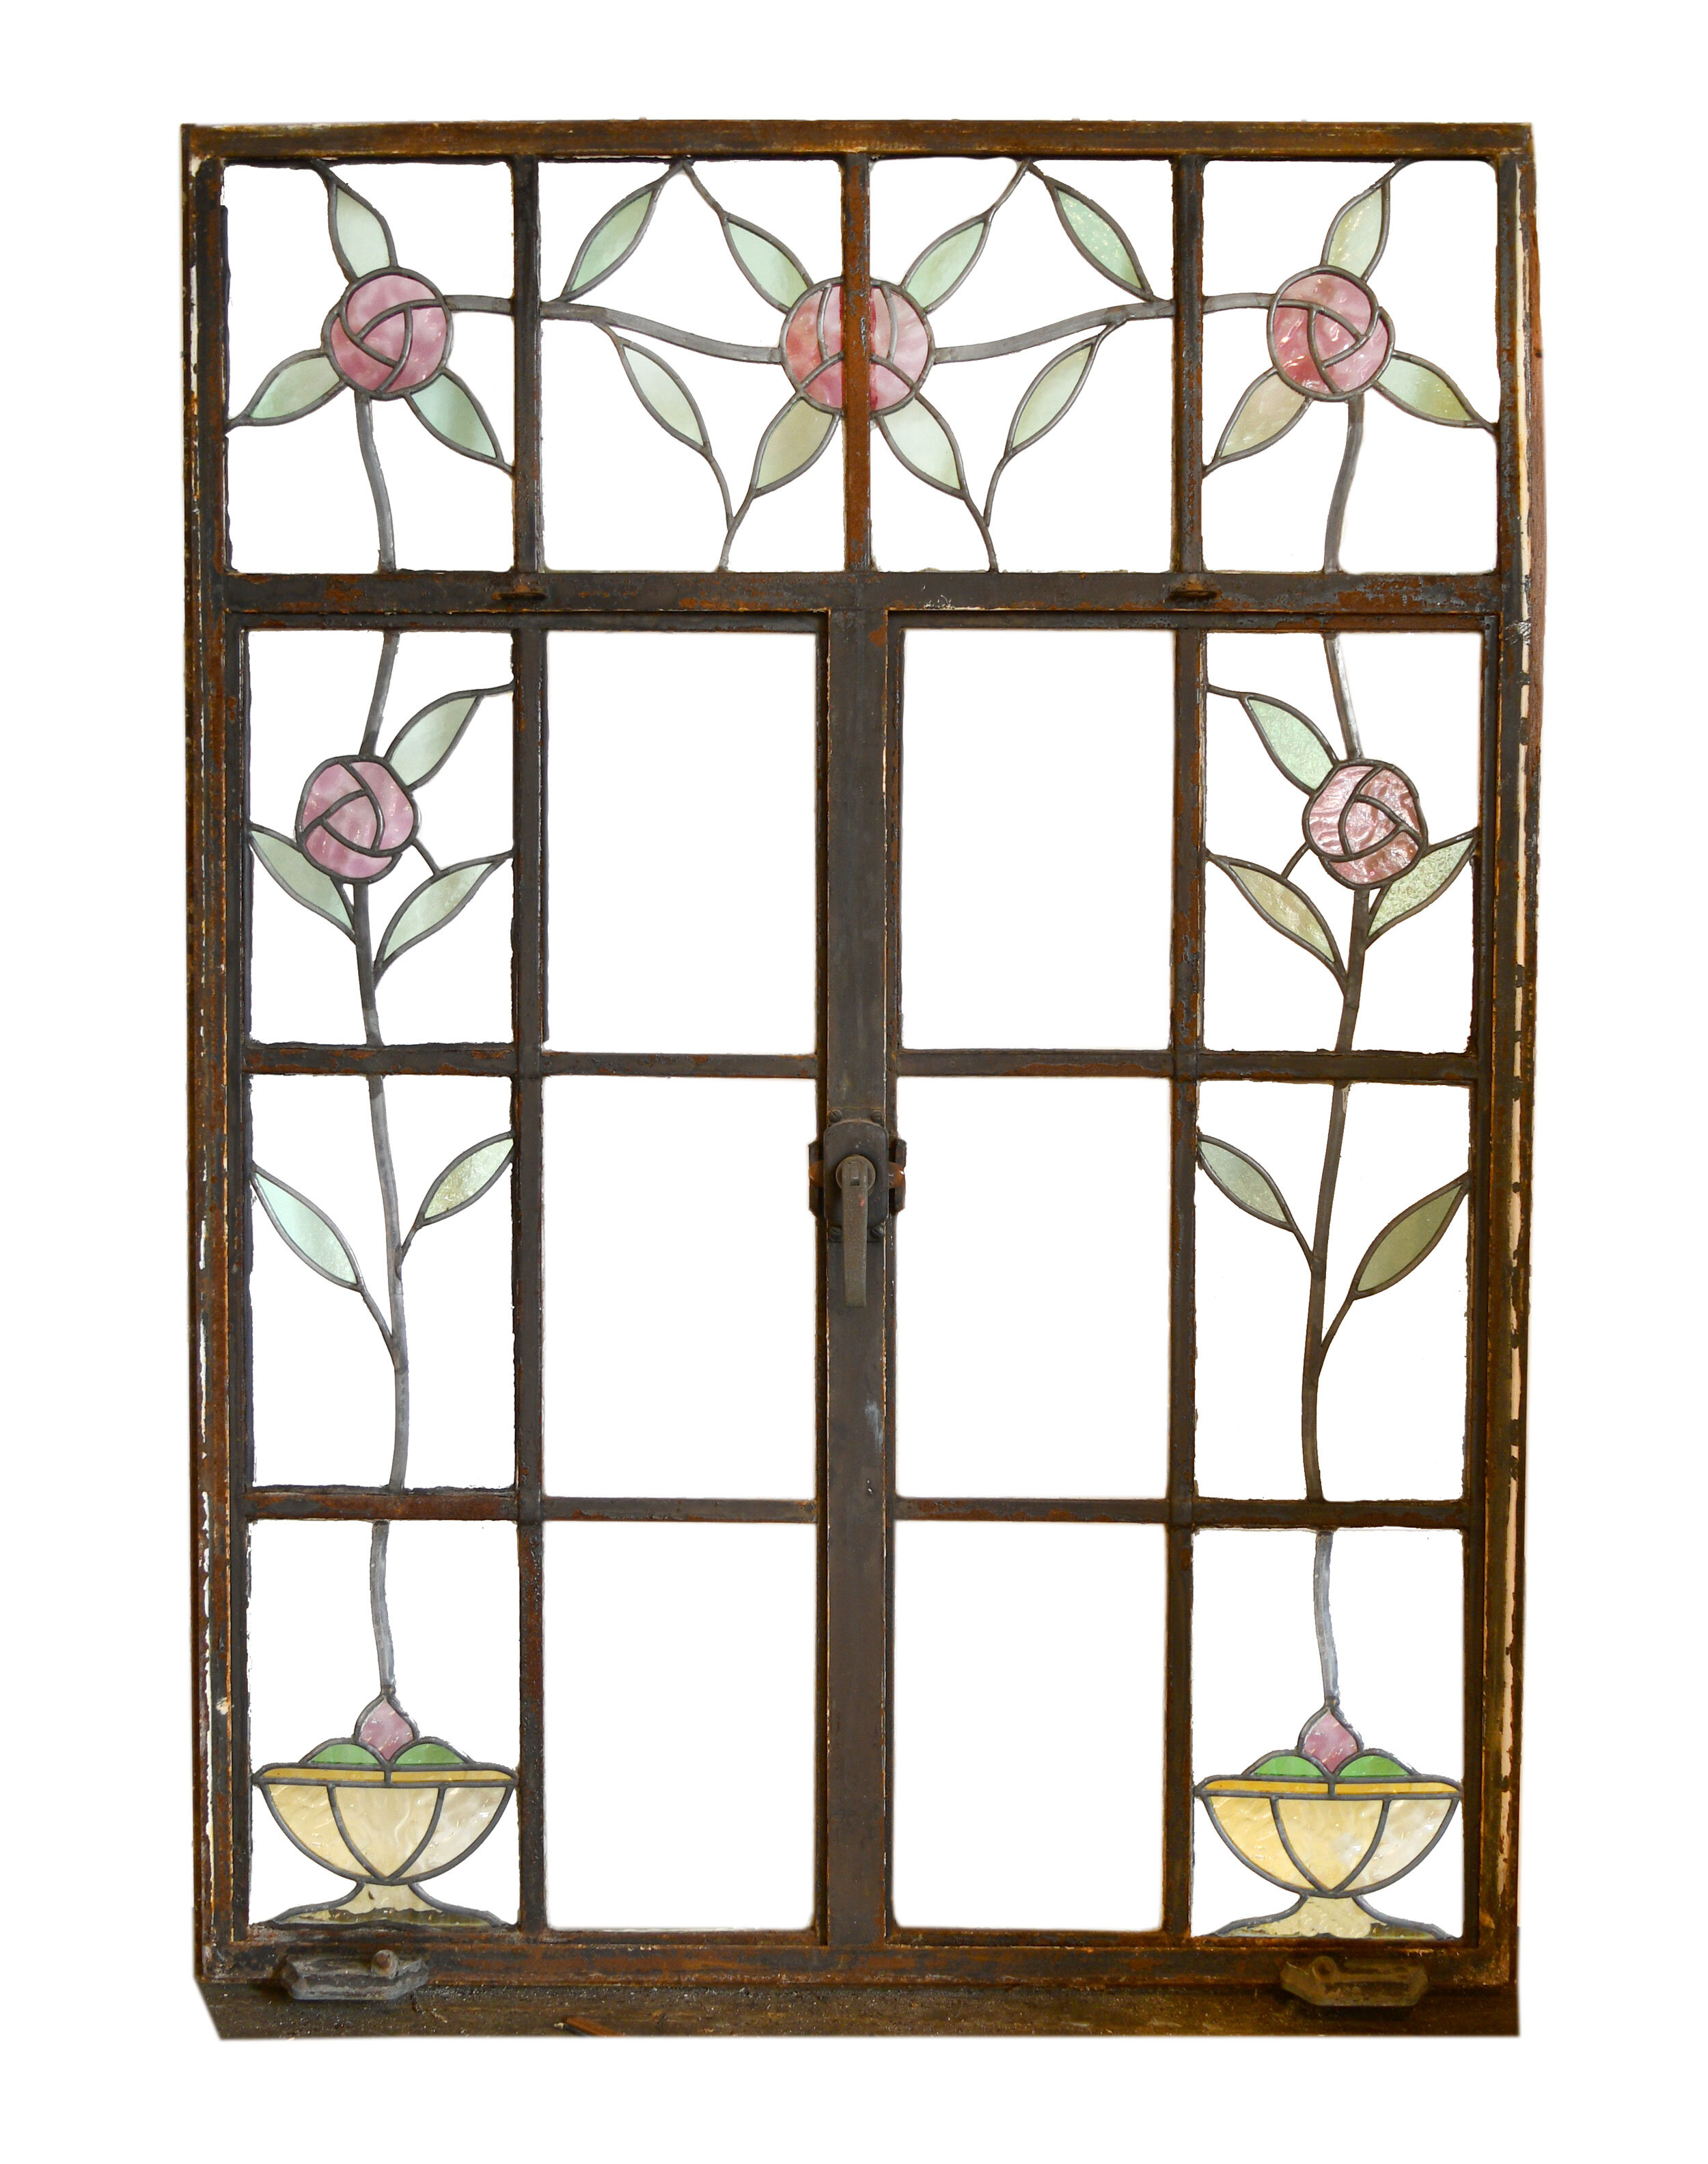 Medium casement window with stained glass roses - 1 available